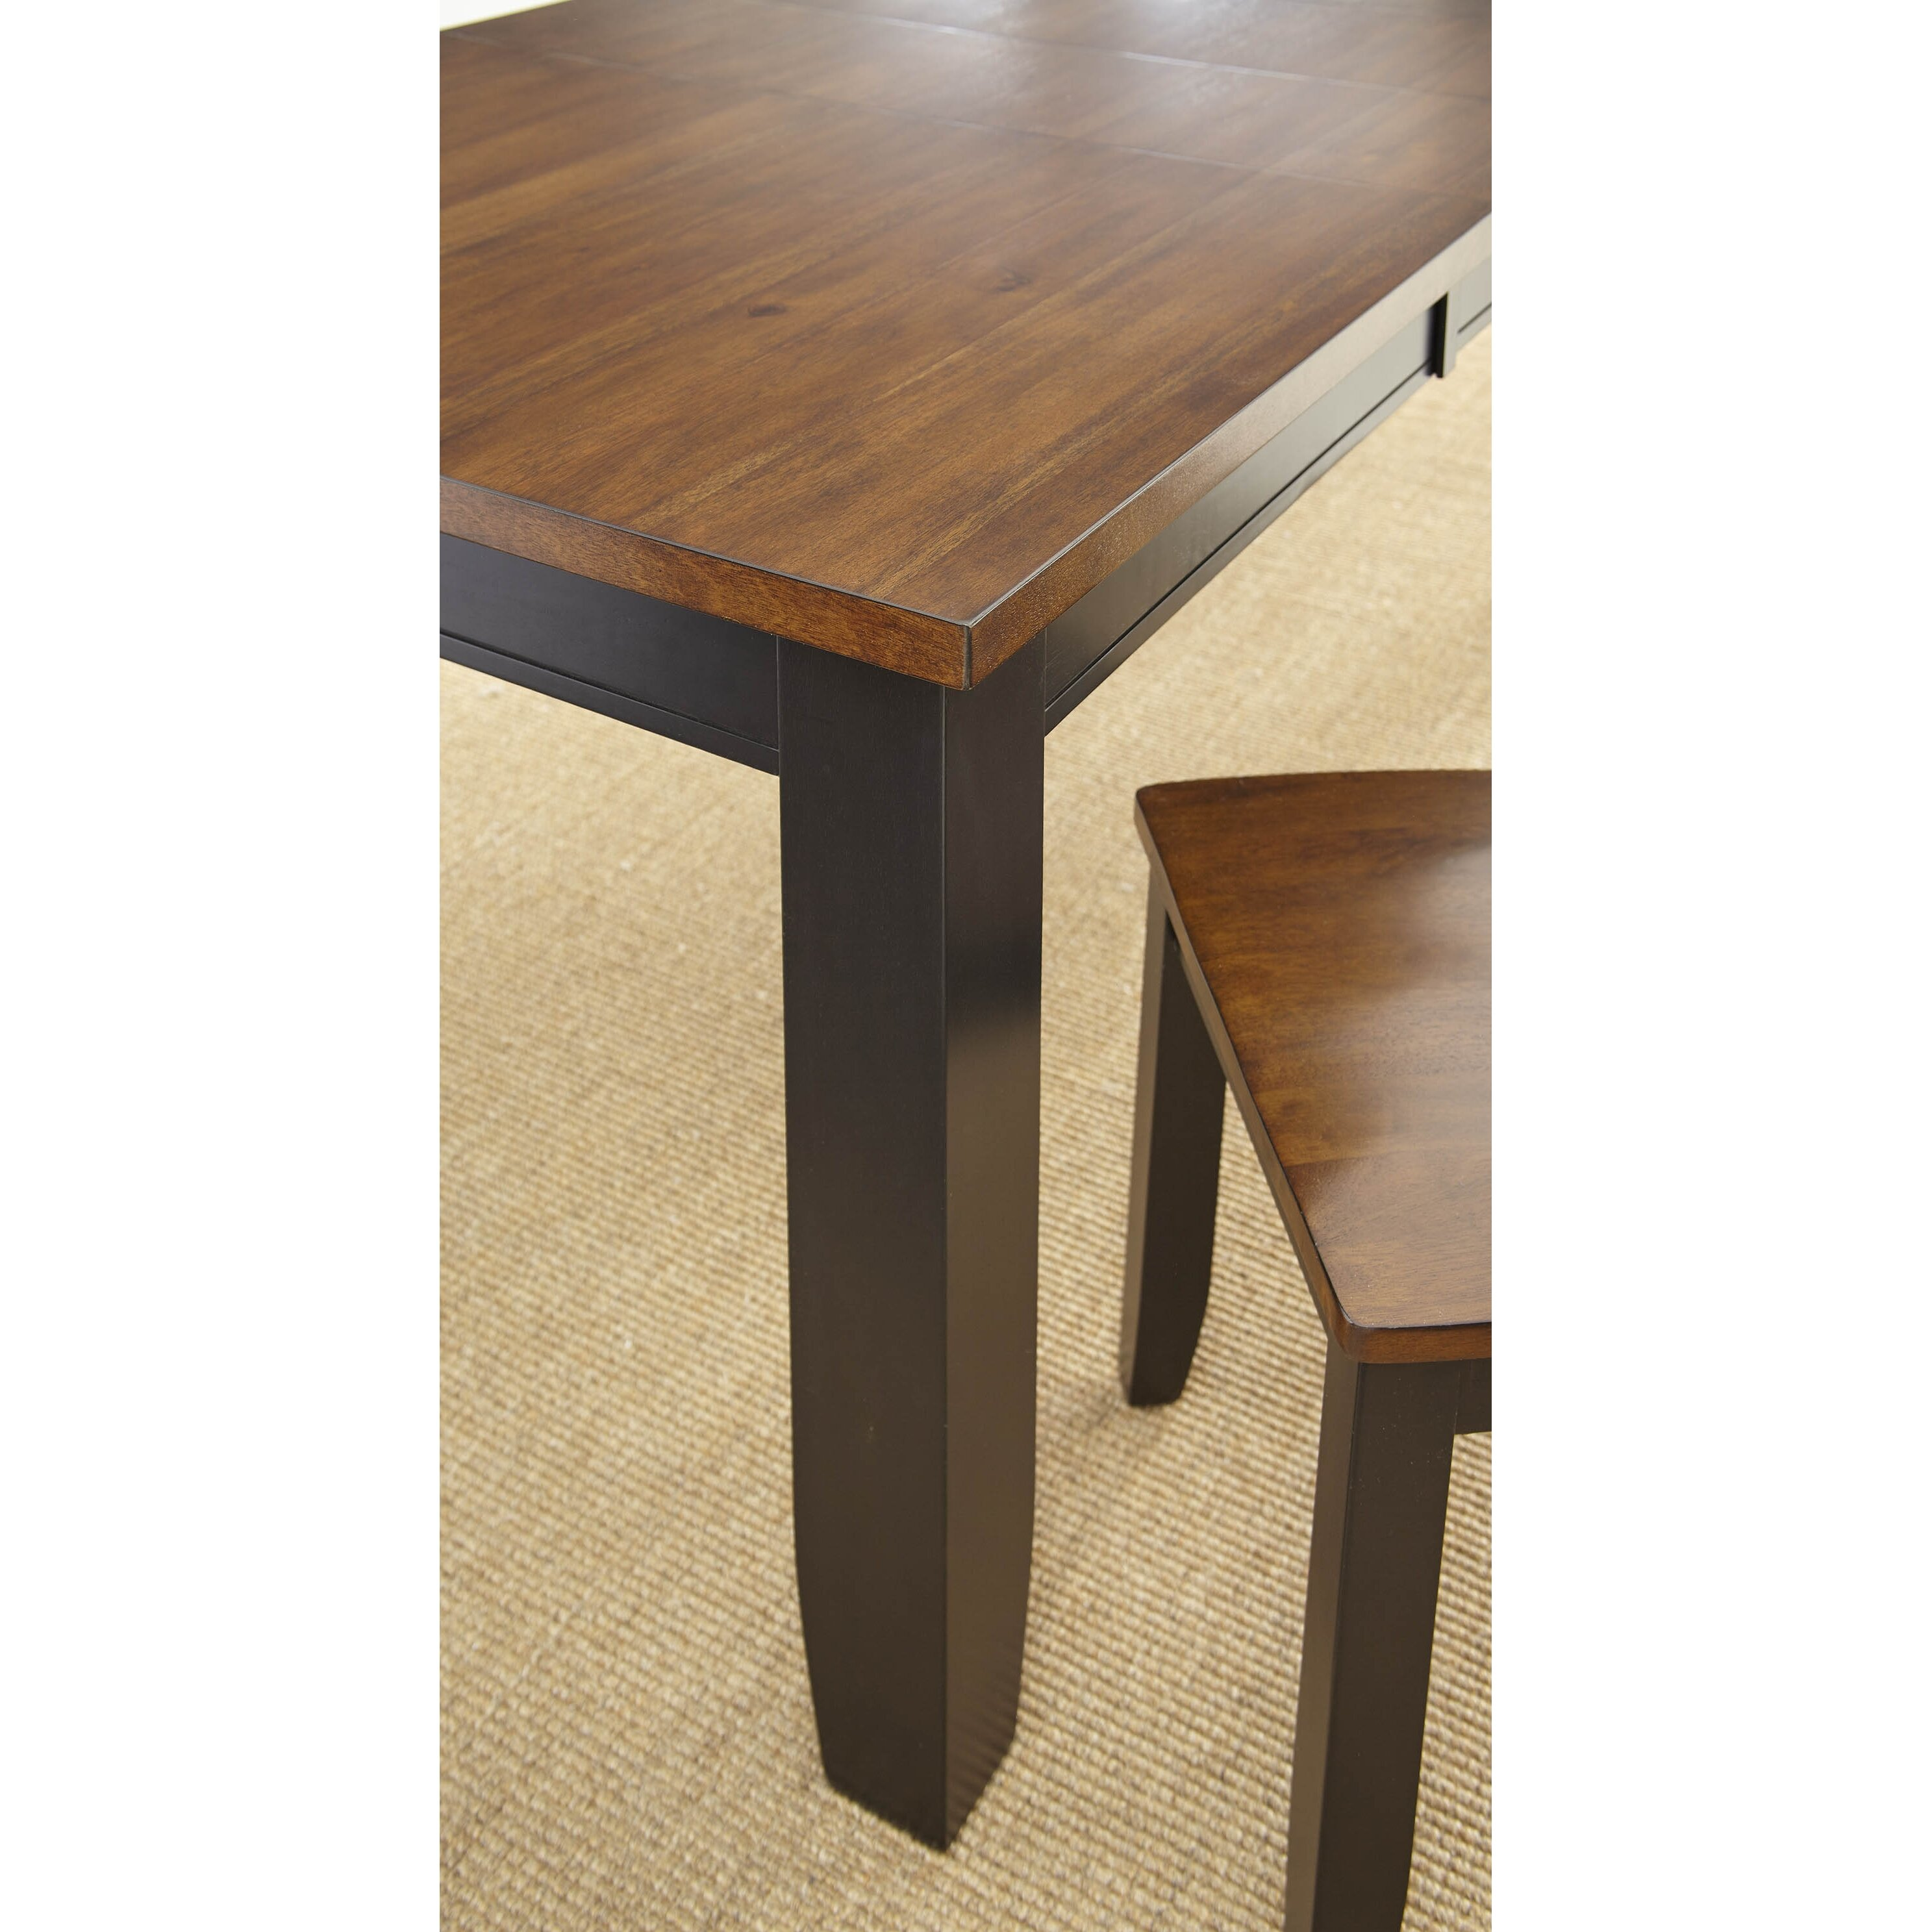 Three Posts Griffey Extendable Dining Table amp Reviews  : Three Posts Griffey Extendable Dining Table from www.wayfair.ca size 2975 x 2975 jpeg 831kB